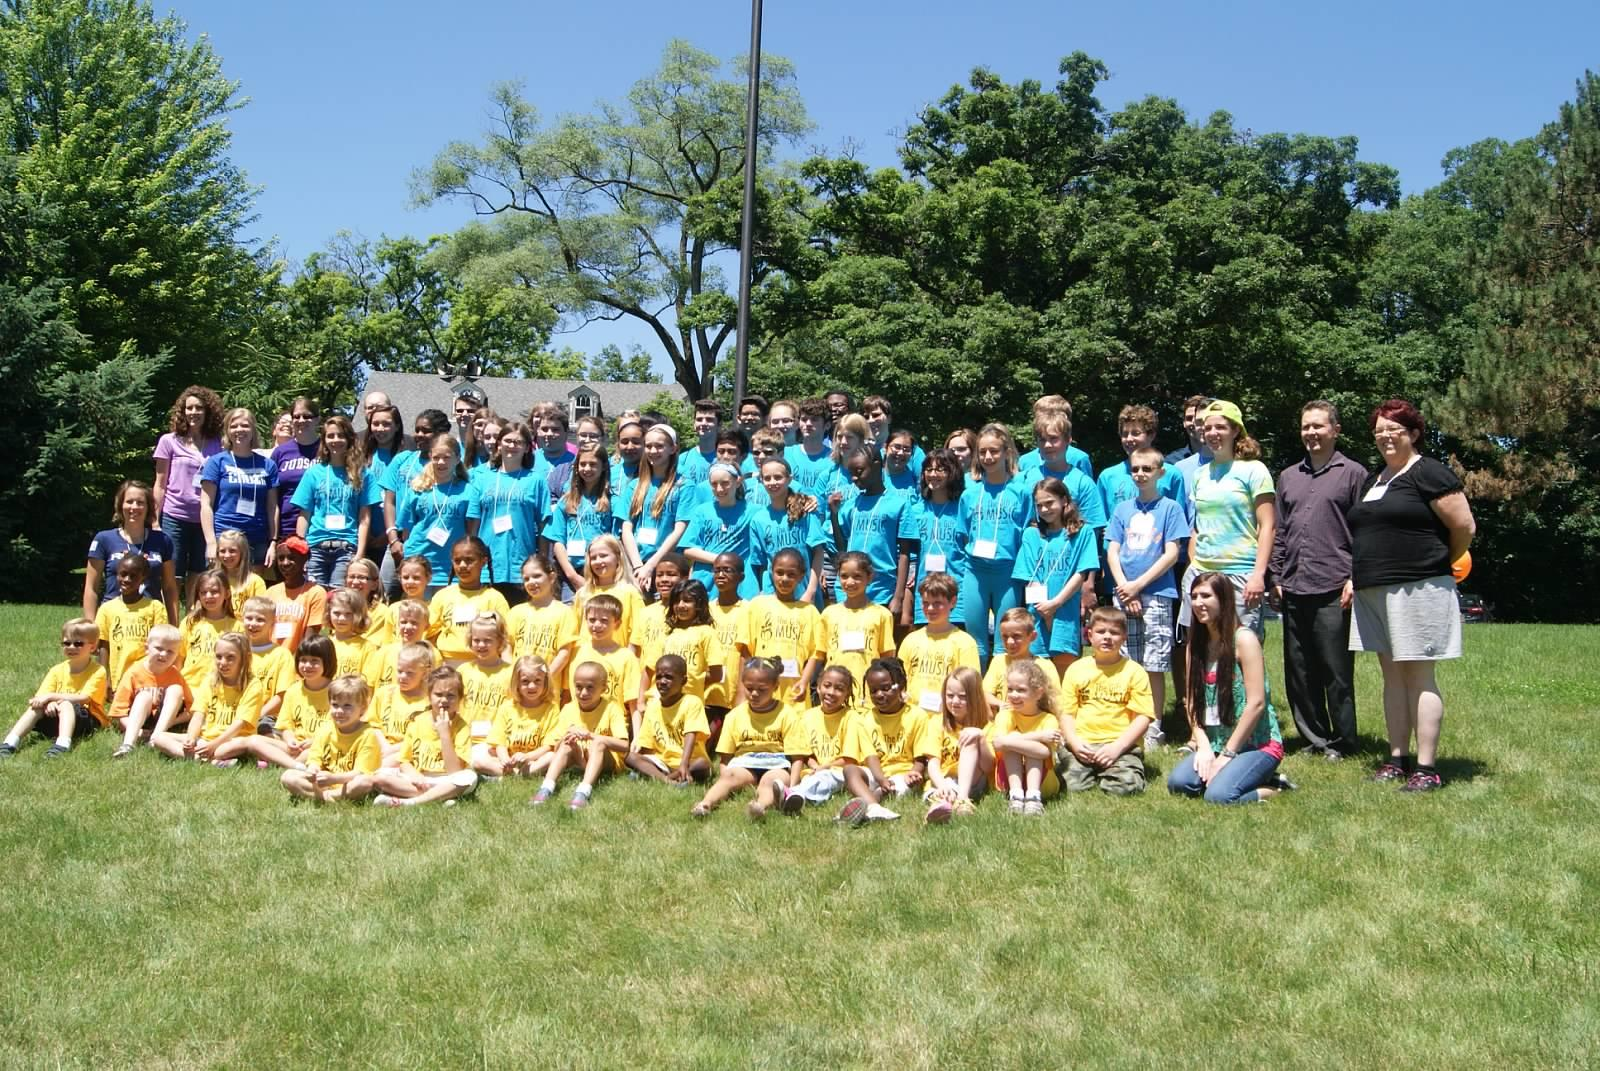 Fox Valley Music Camp 2017 | Elgin, IL | Judson University | June 19, 2017